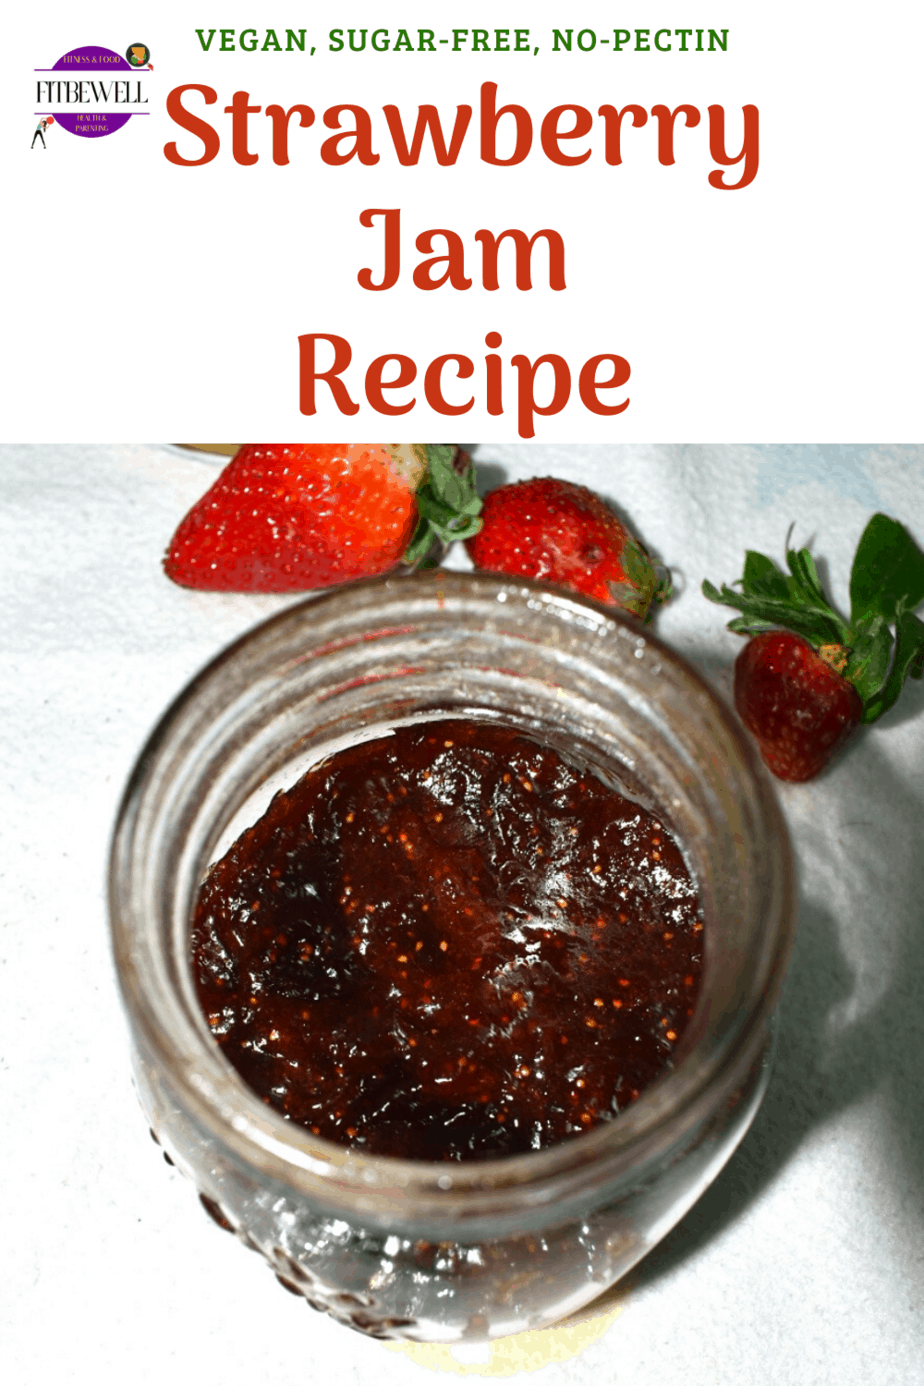 No-Sugar, No-Pectin healthy Homemade strawberry jam